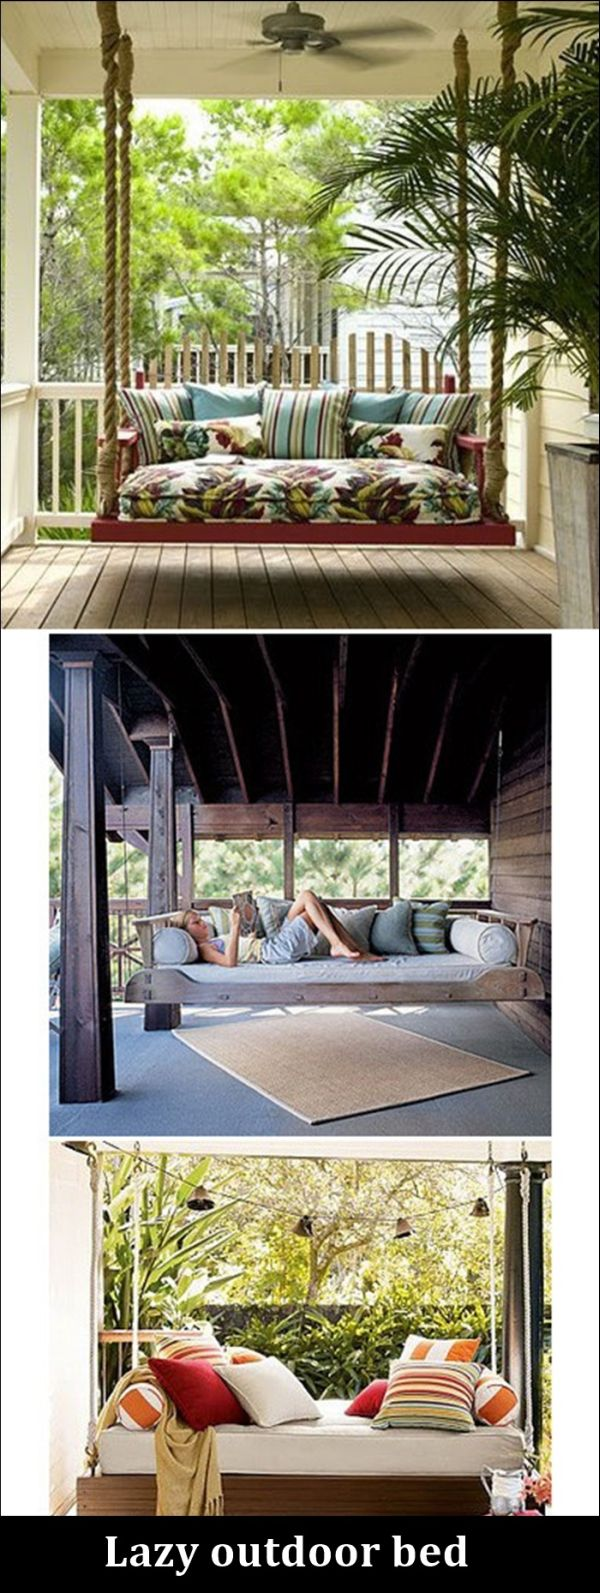 Awesome Things for Your Home (27 pics)